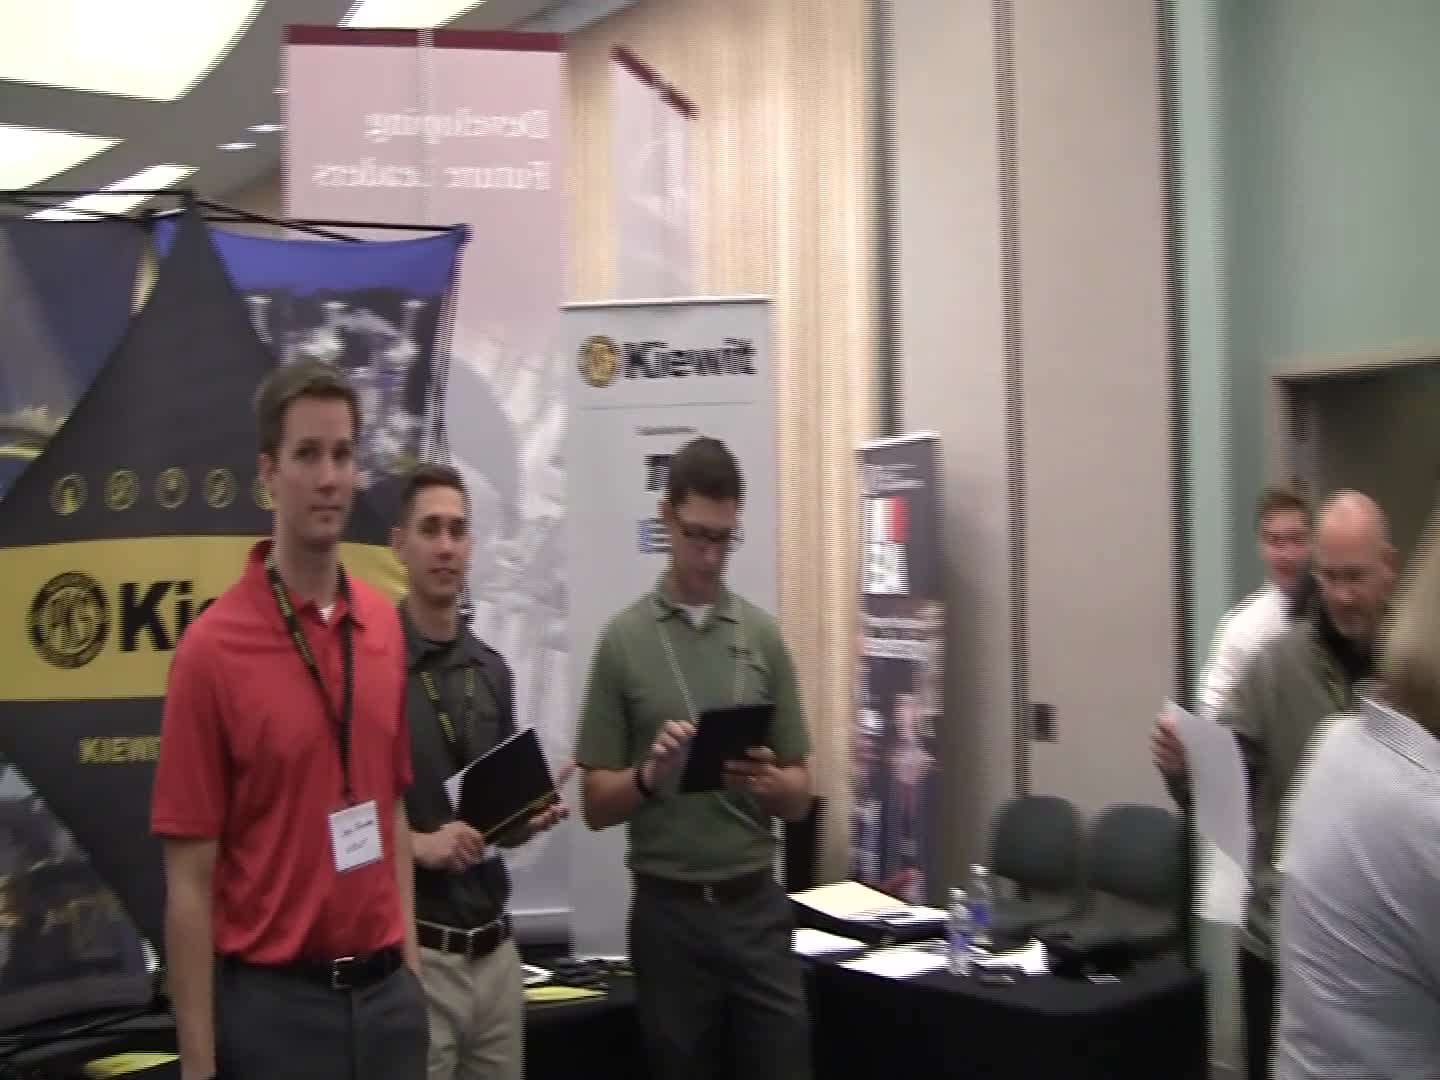 Durham Career Fair - Random Video 3